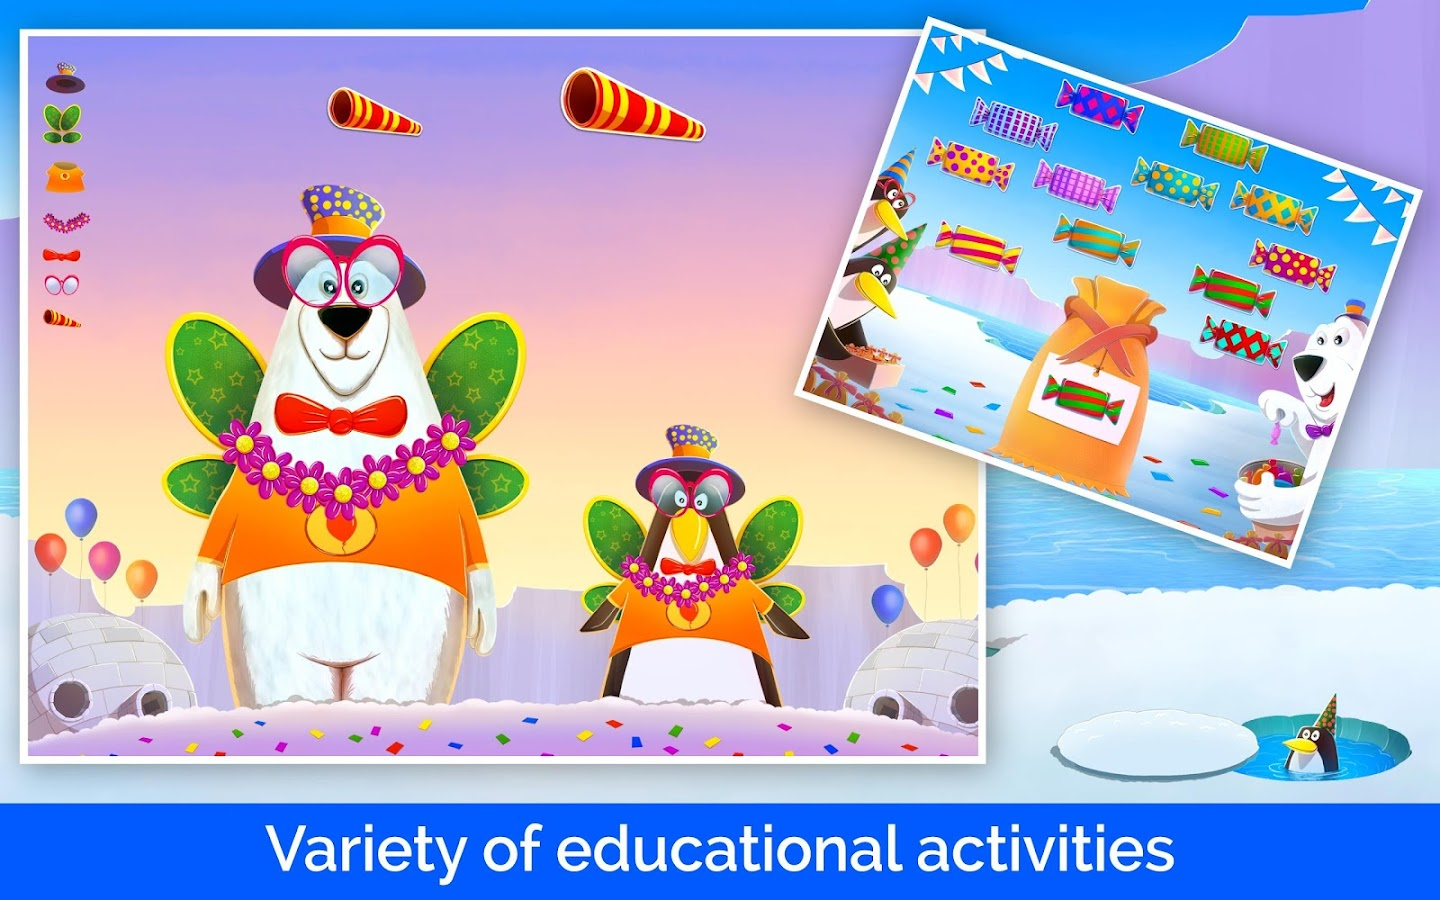 birthday party games for kids android apps on google play